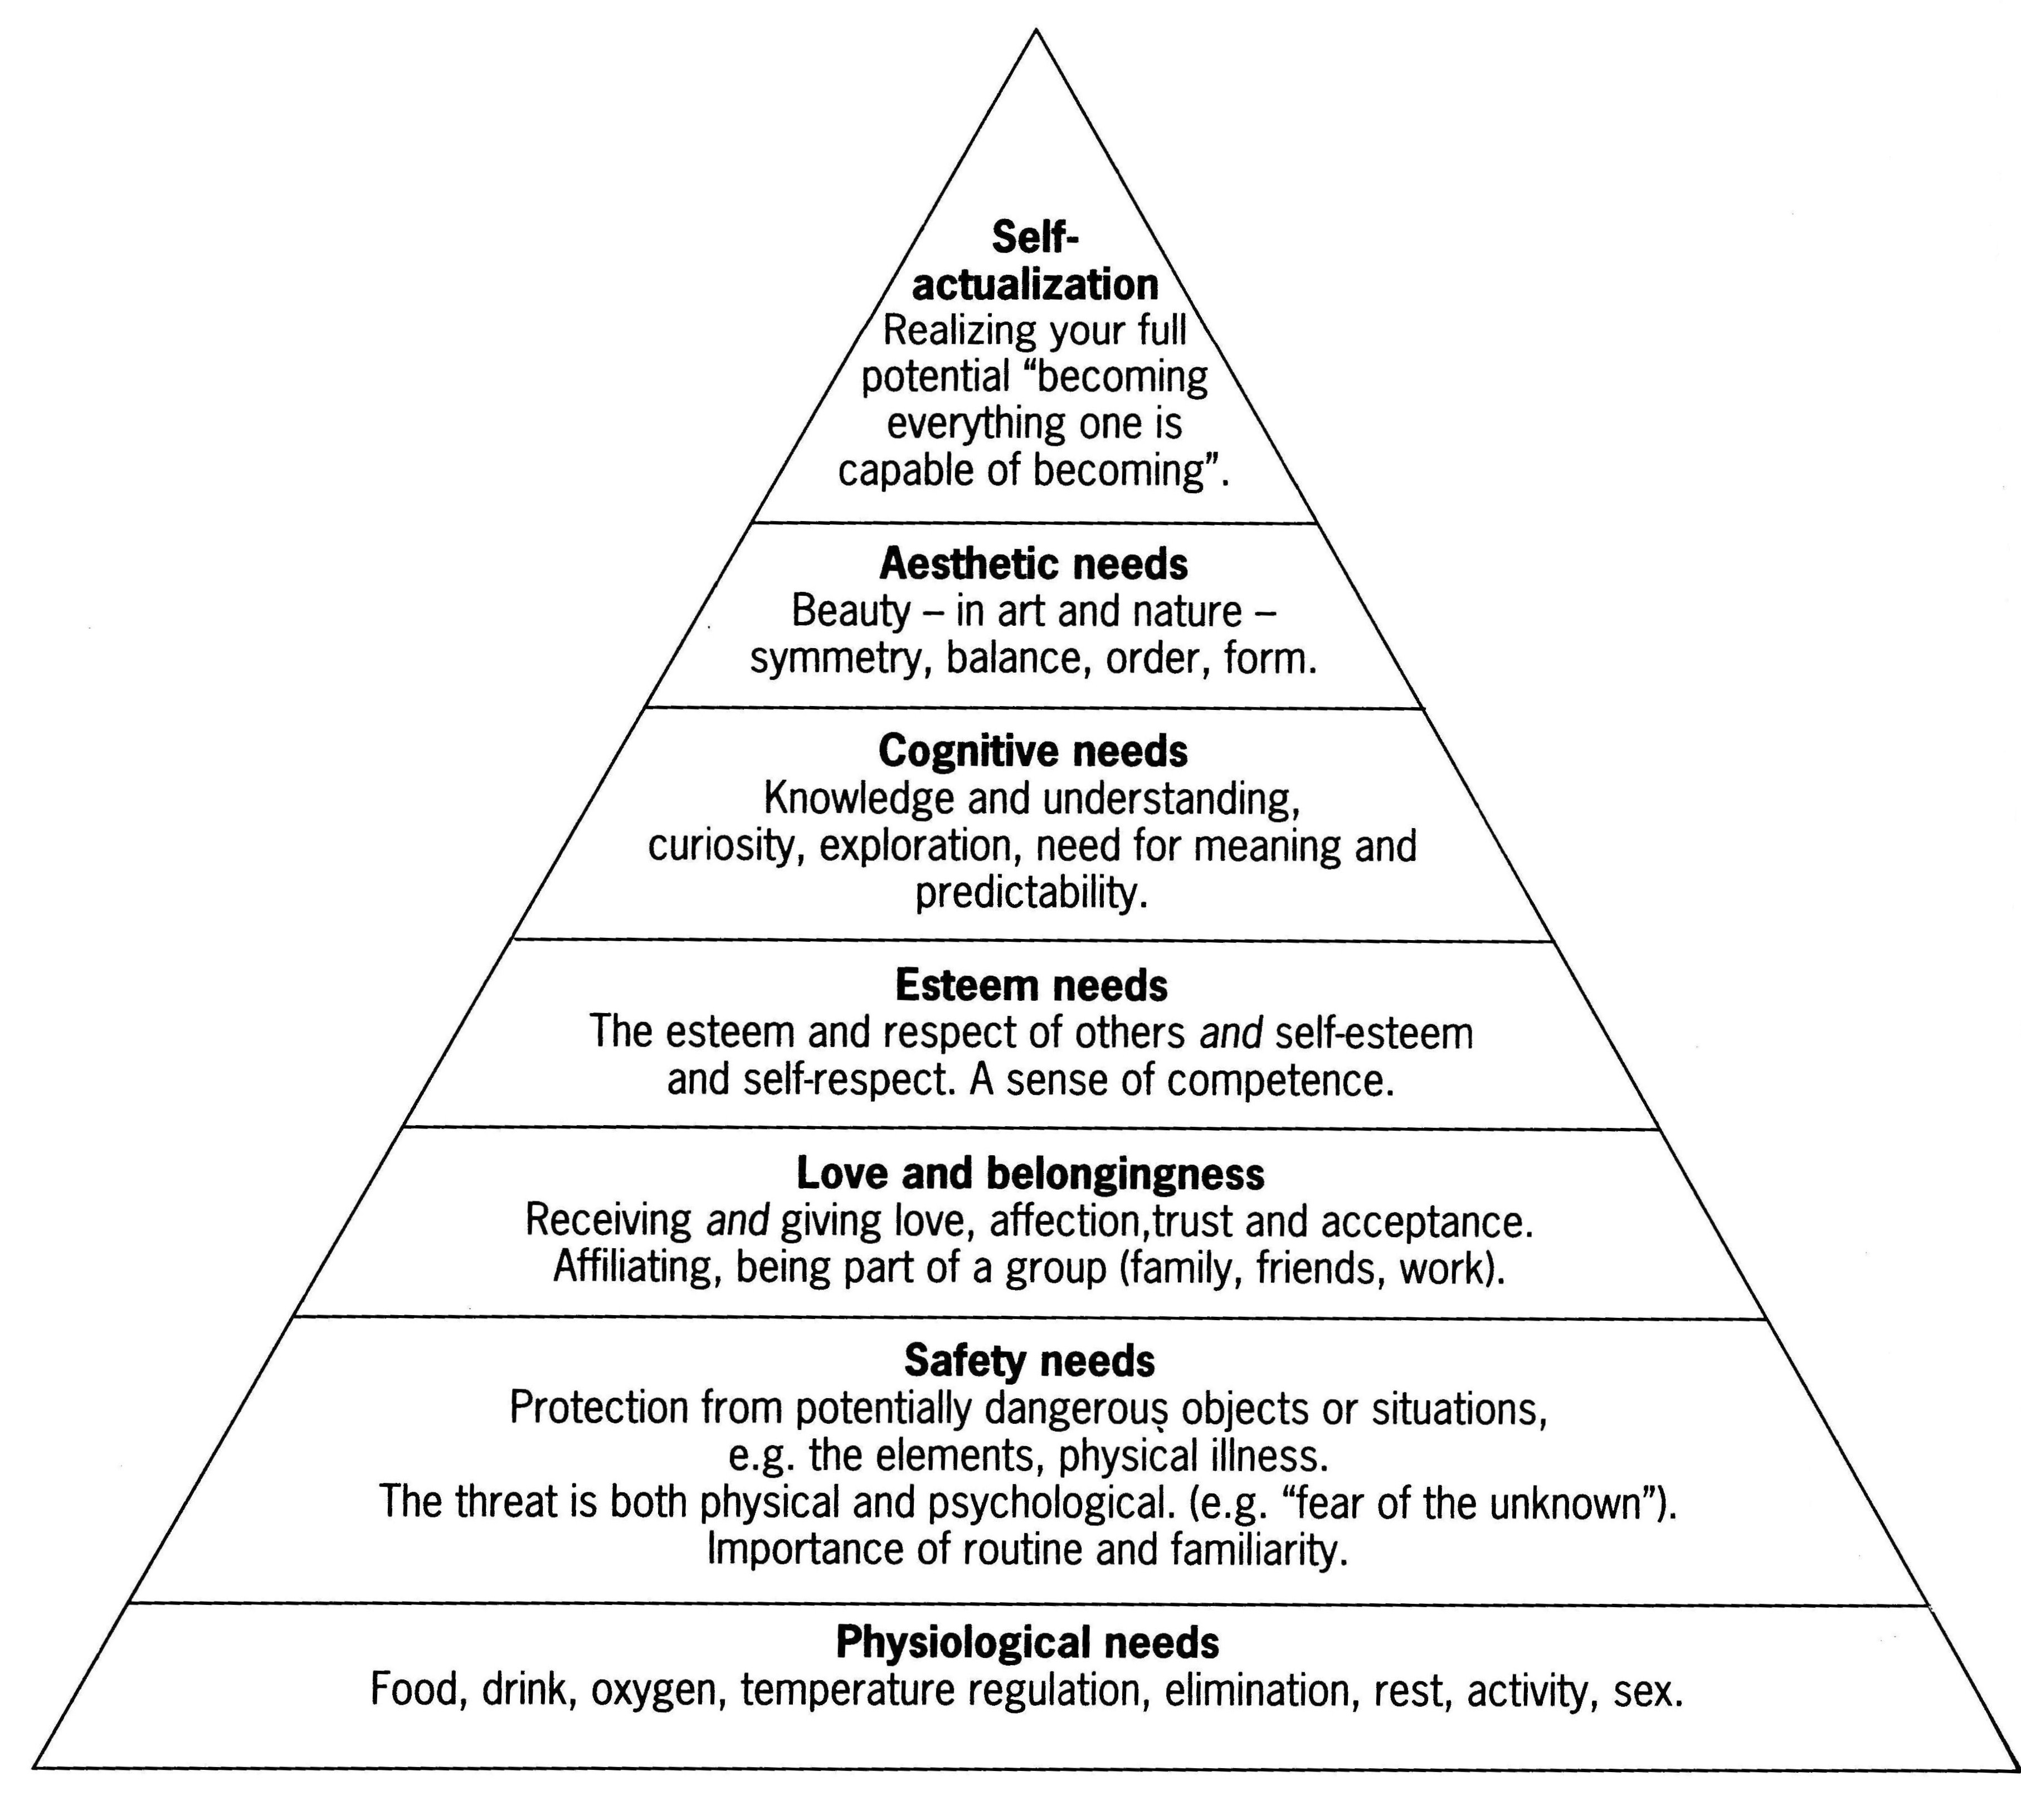 Maslow's Theory of Motivation: Merits and Criticisms